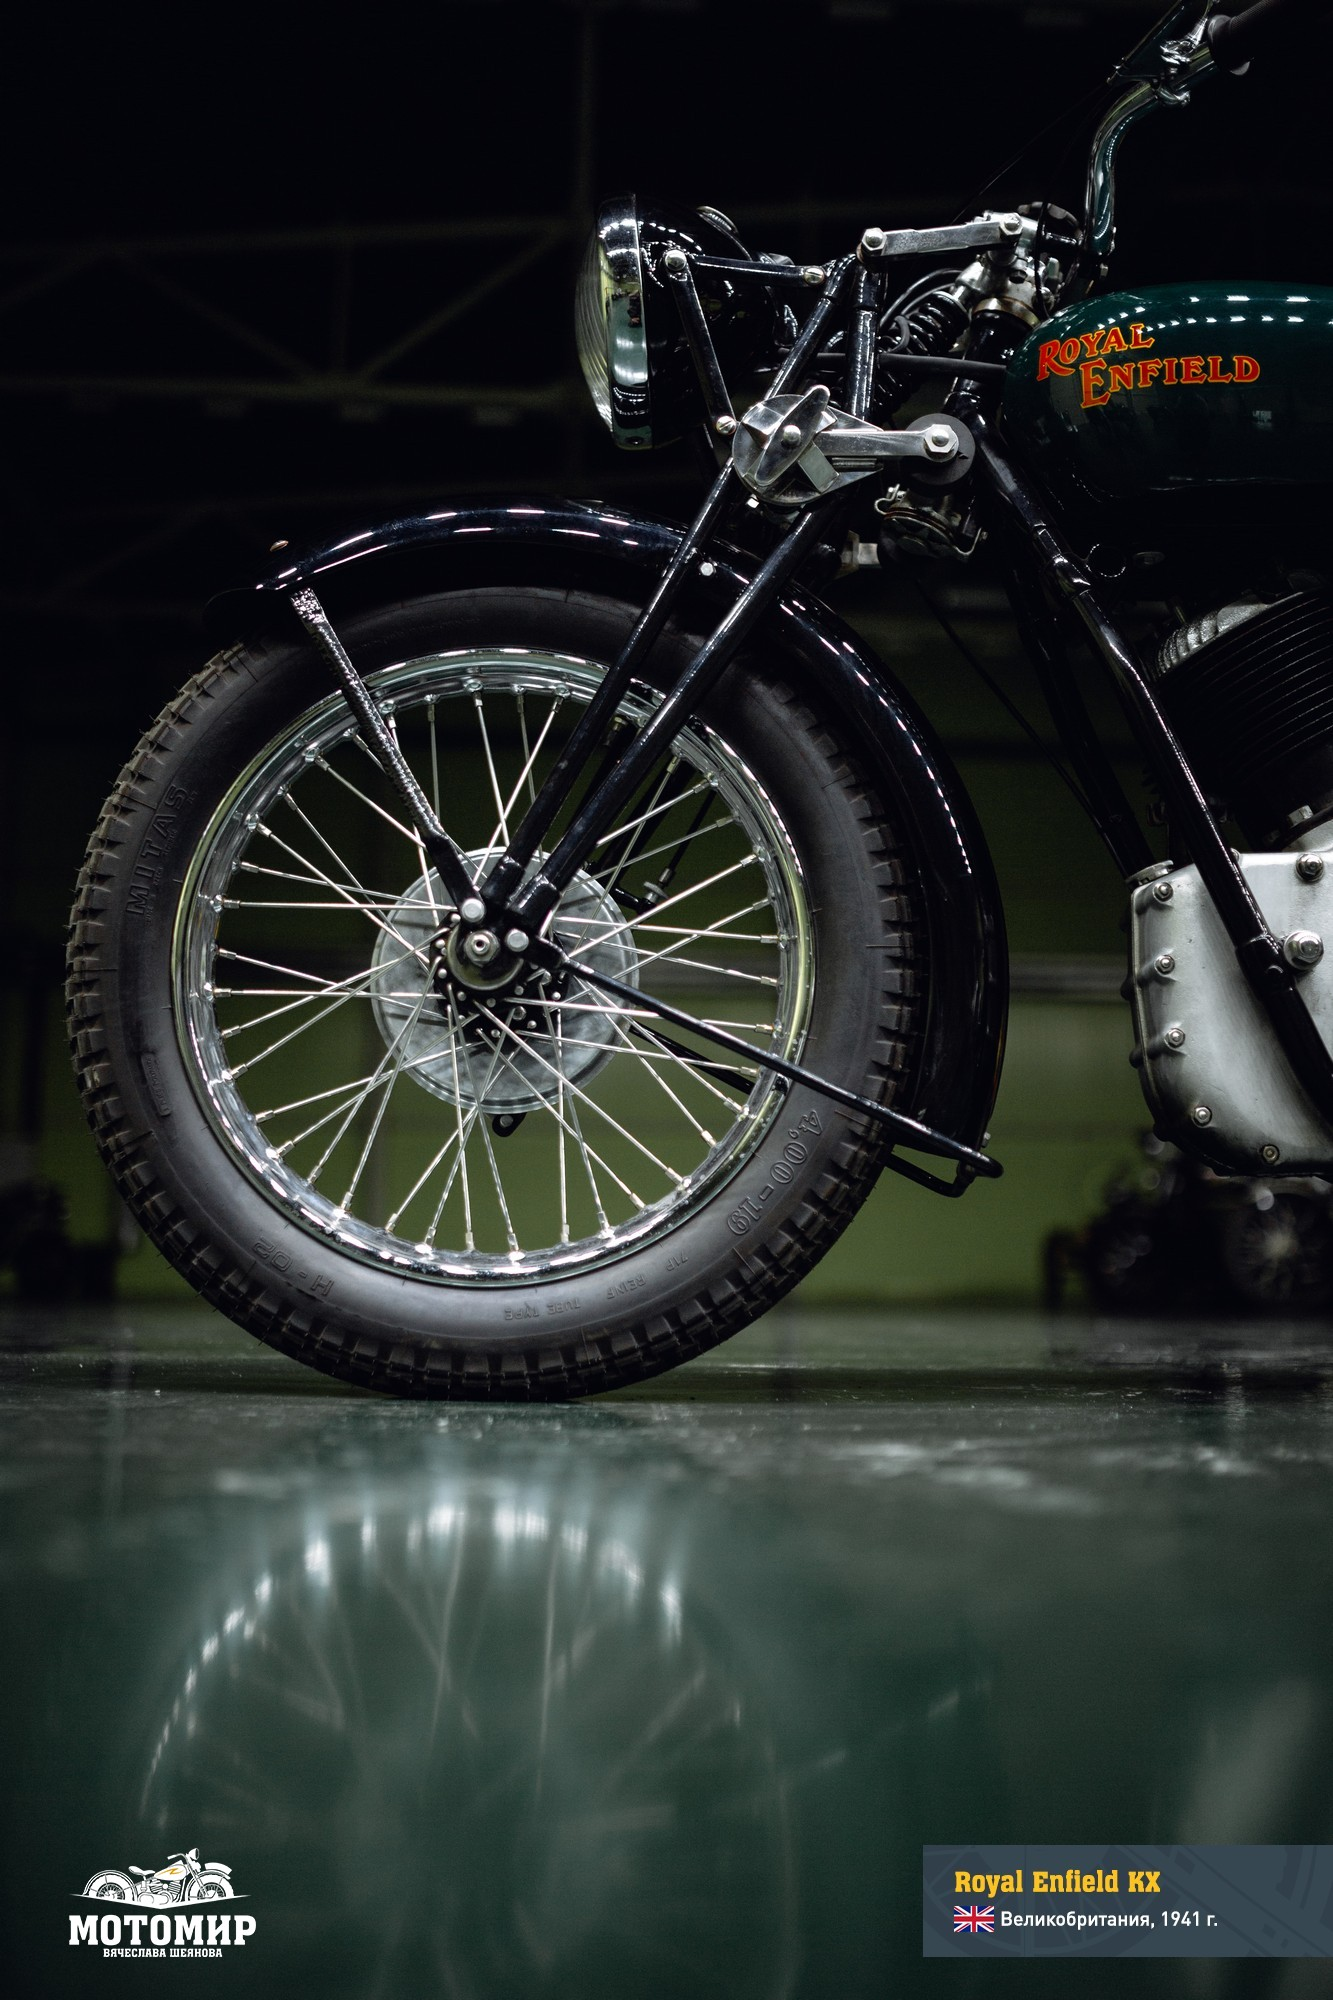 royal-enfield-kx-201601-web-20